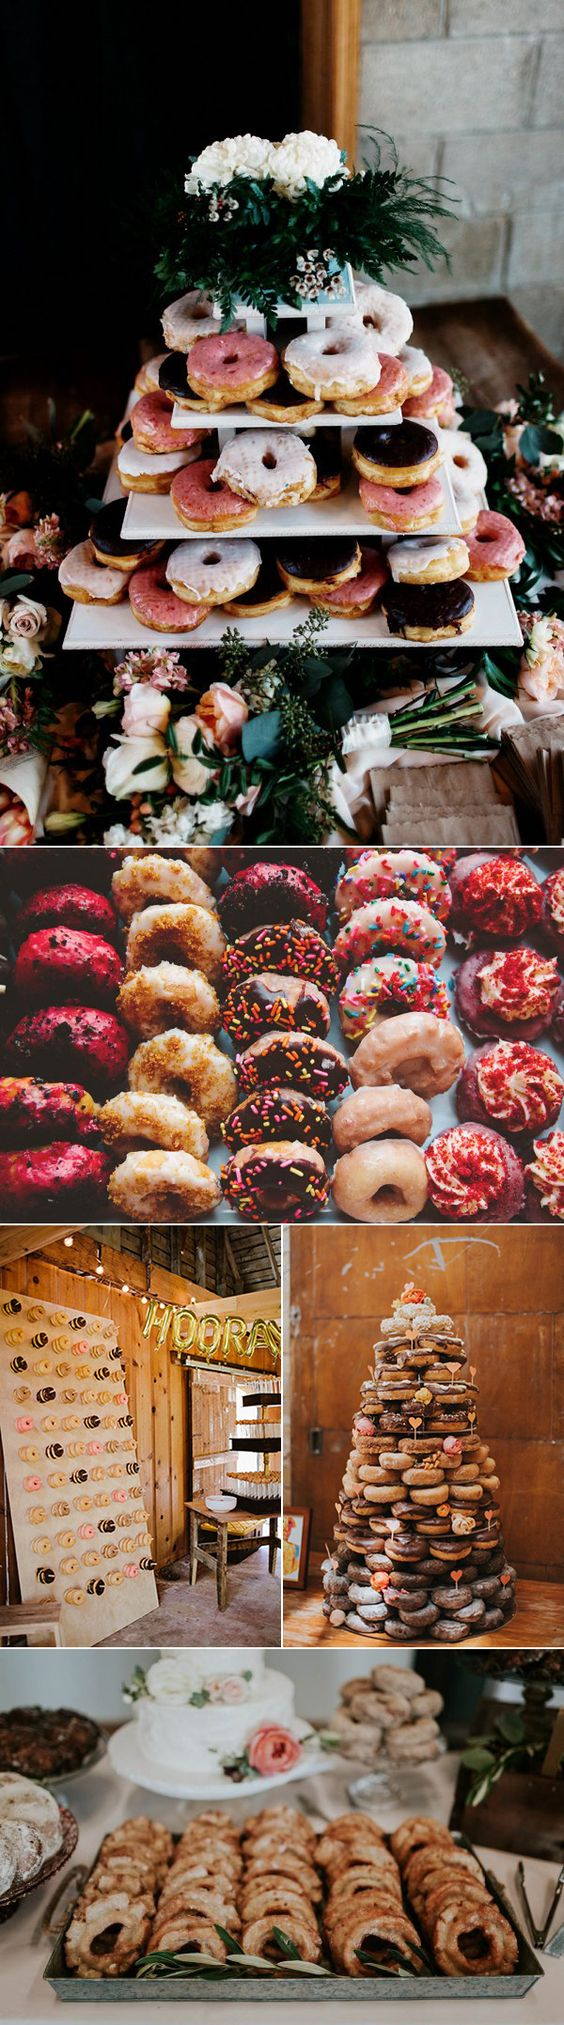 Divertidas y económicas, las donuts se incorporan a las bodas en las paredes, las mesas de postres y las tartas. Fotografía: Matt & Tish Photography, The Shalom Imaginative, Studio-29 Photography + Design, Olivia Strohm Photography, Jamie Jones Photography.